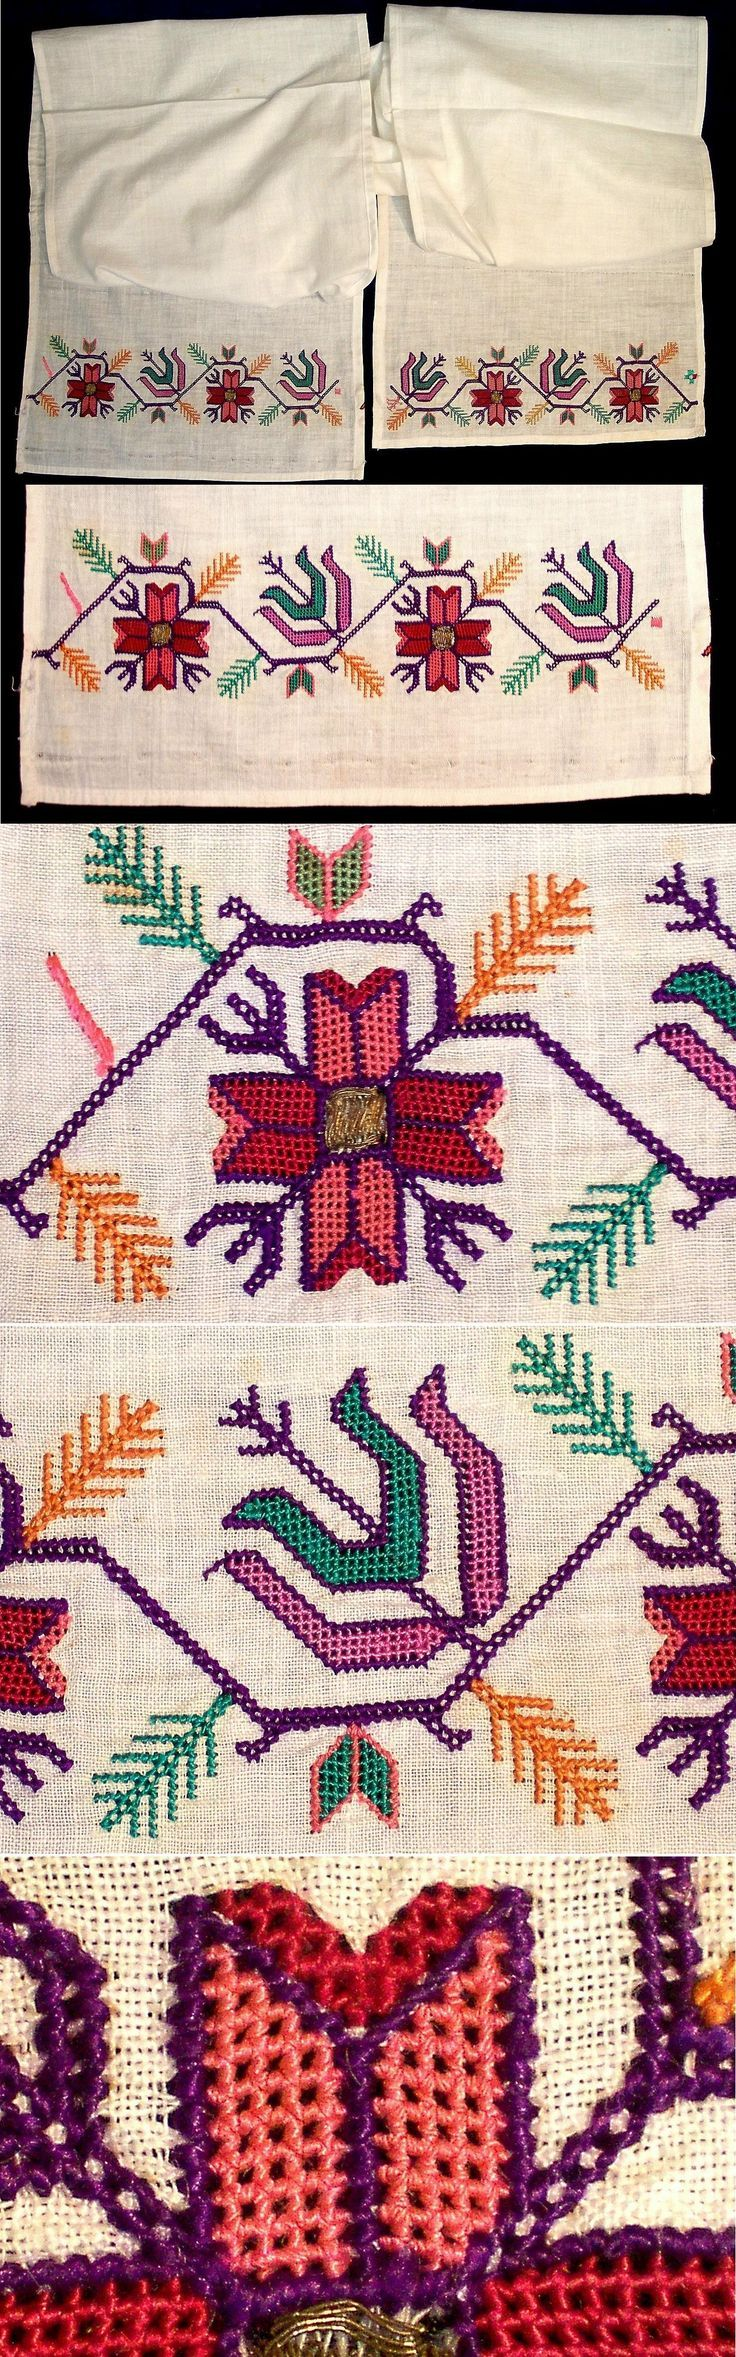 An 'uçkur' (sash / waist band), generally worn by women. From the rural Sakarya region (north of Bilecik), 1900-1950. Stylized vegetable motifs. Open work embroidery with polychrome silk on cotton. Small sections embroidered with 'gold' metal thread. Both embroidery techniques are 'two-sided' (identical on both sides). (Kavak Collection of Anatolian Textiles -Antwerpen/Belgium).